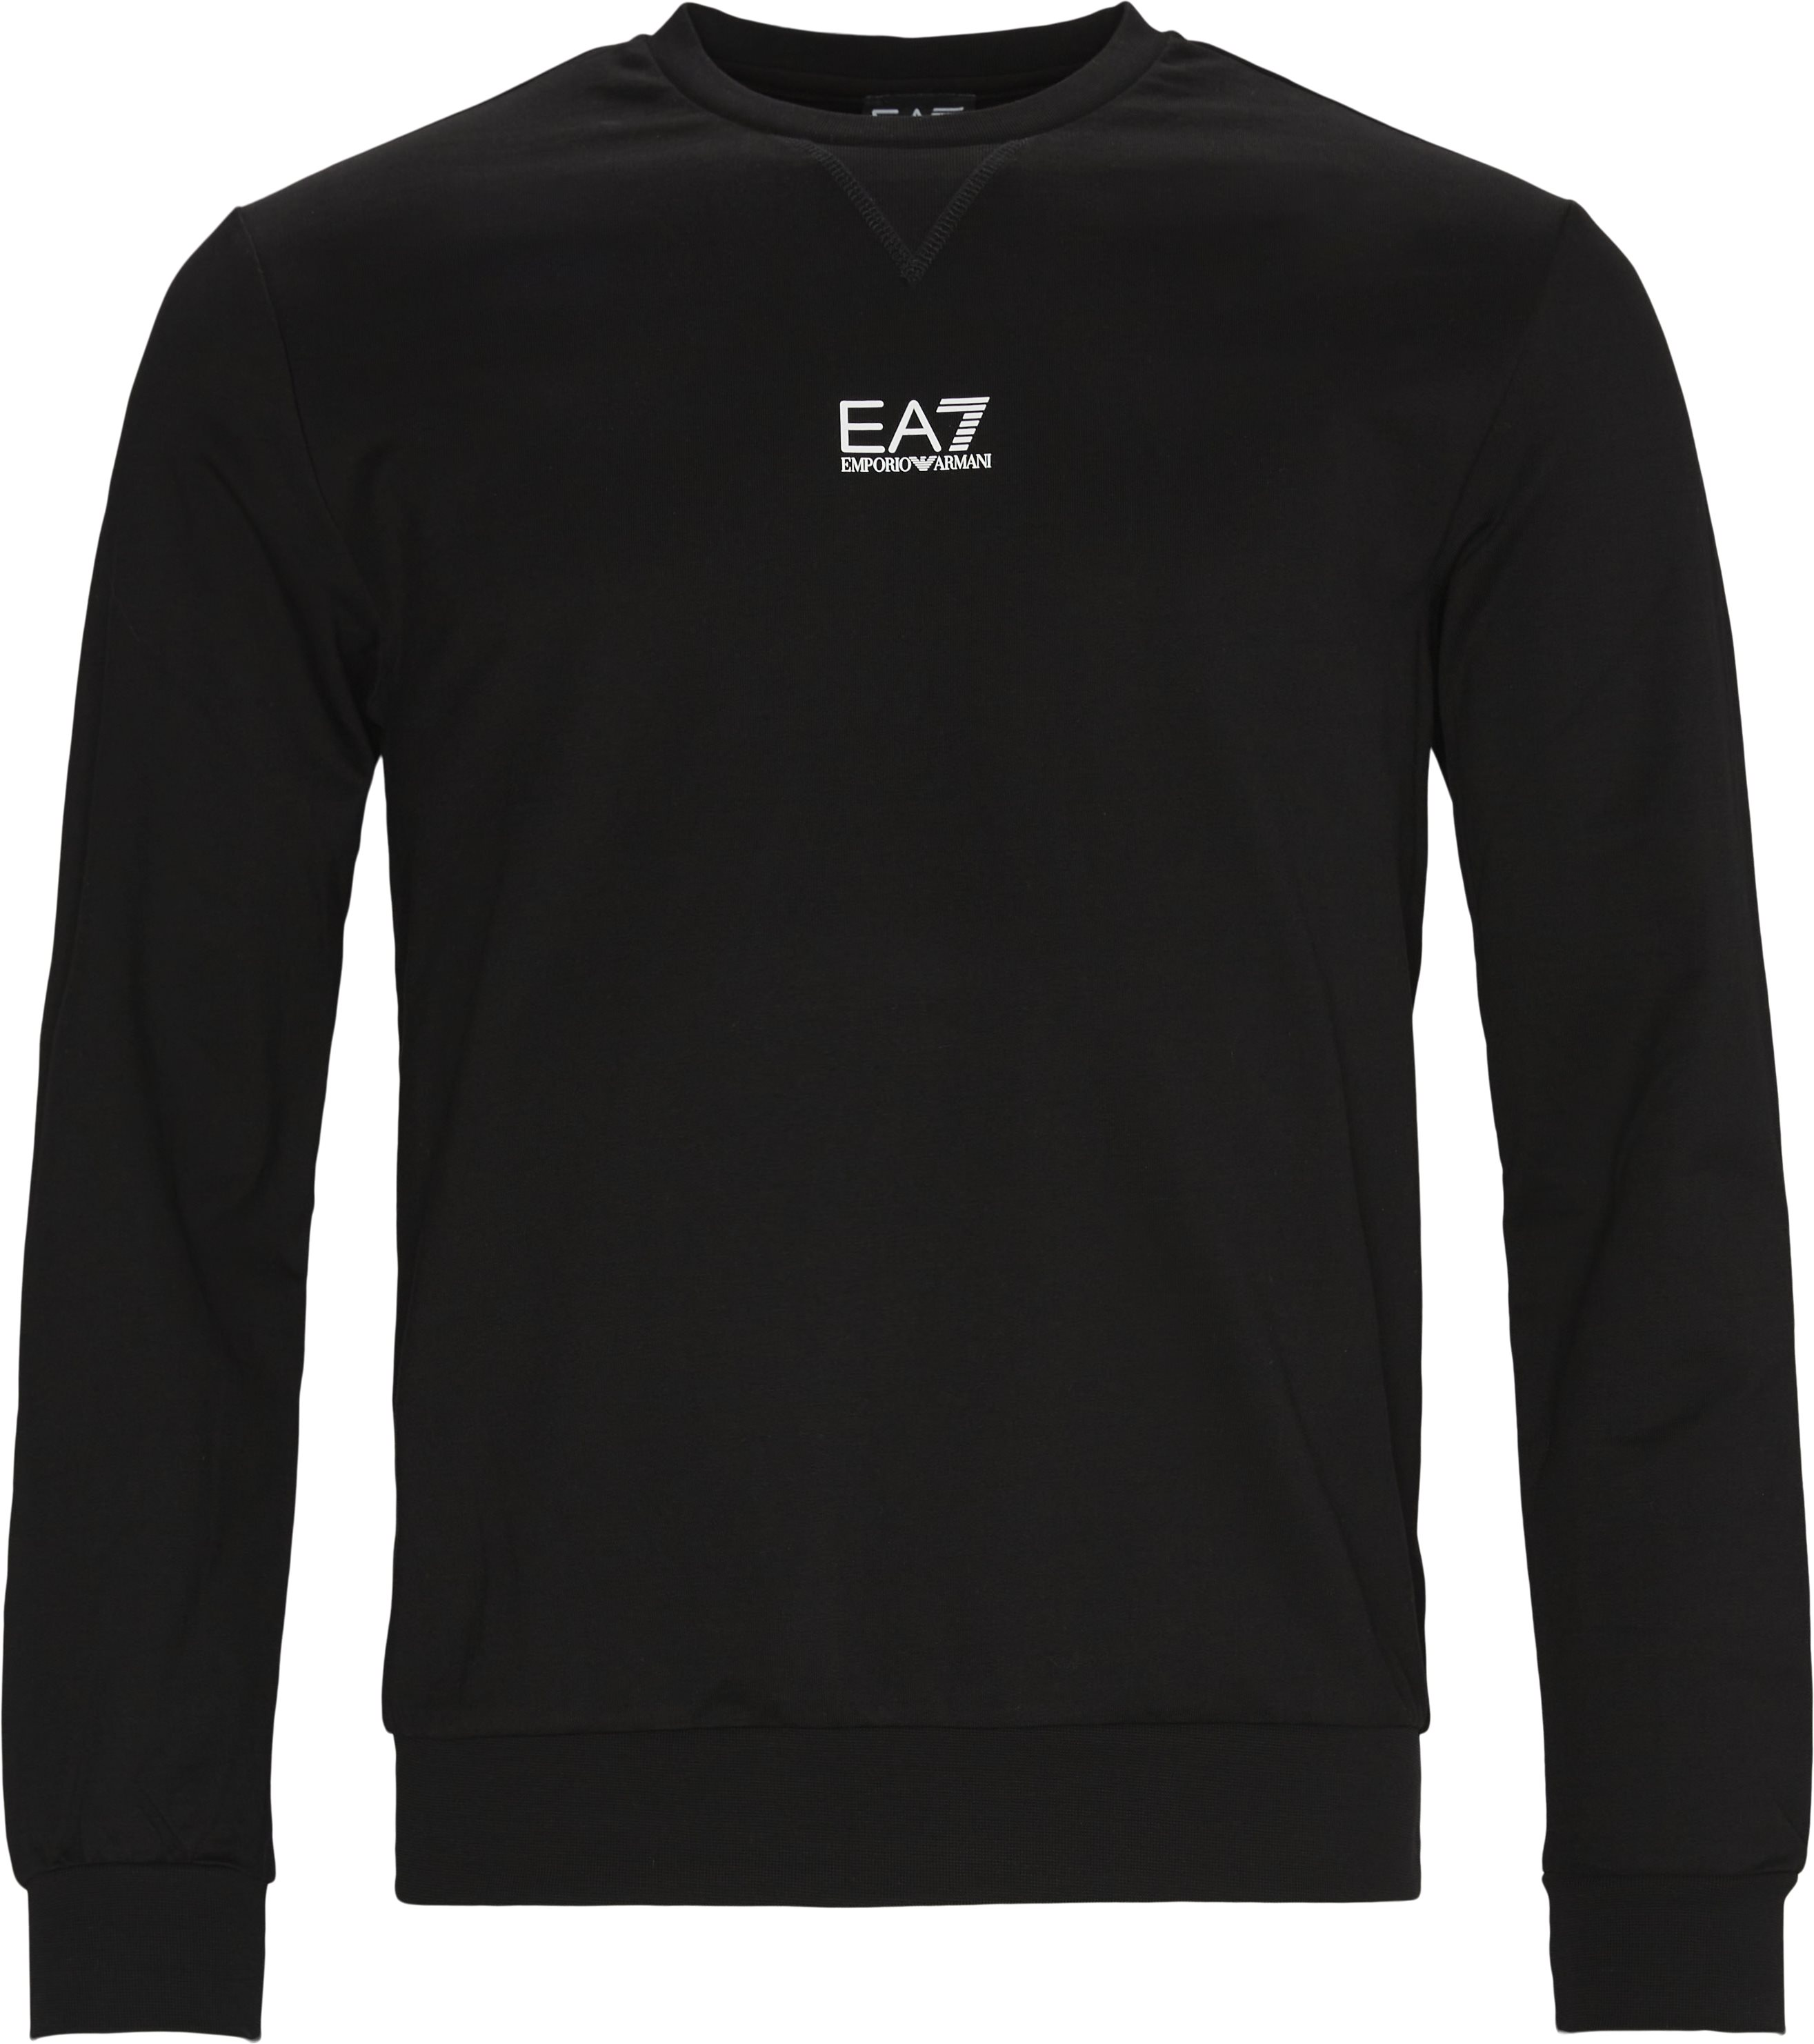 Pj05z-3kpm35 Sweatshirt - Sweatshirts - Regular - Sort